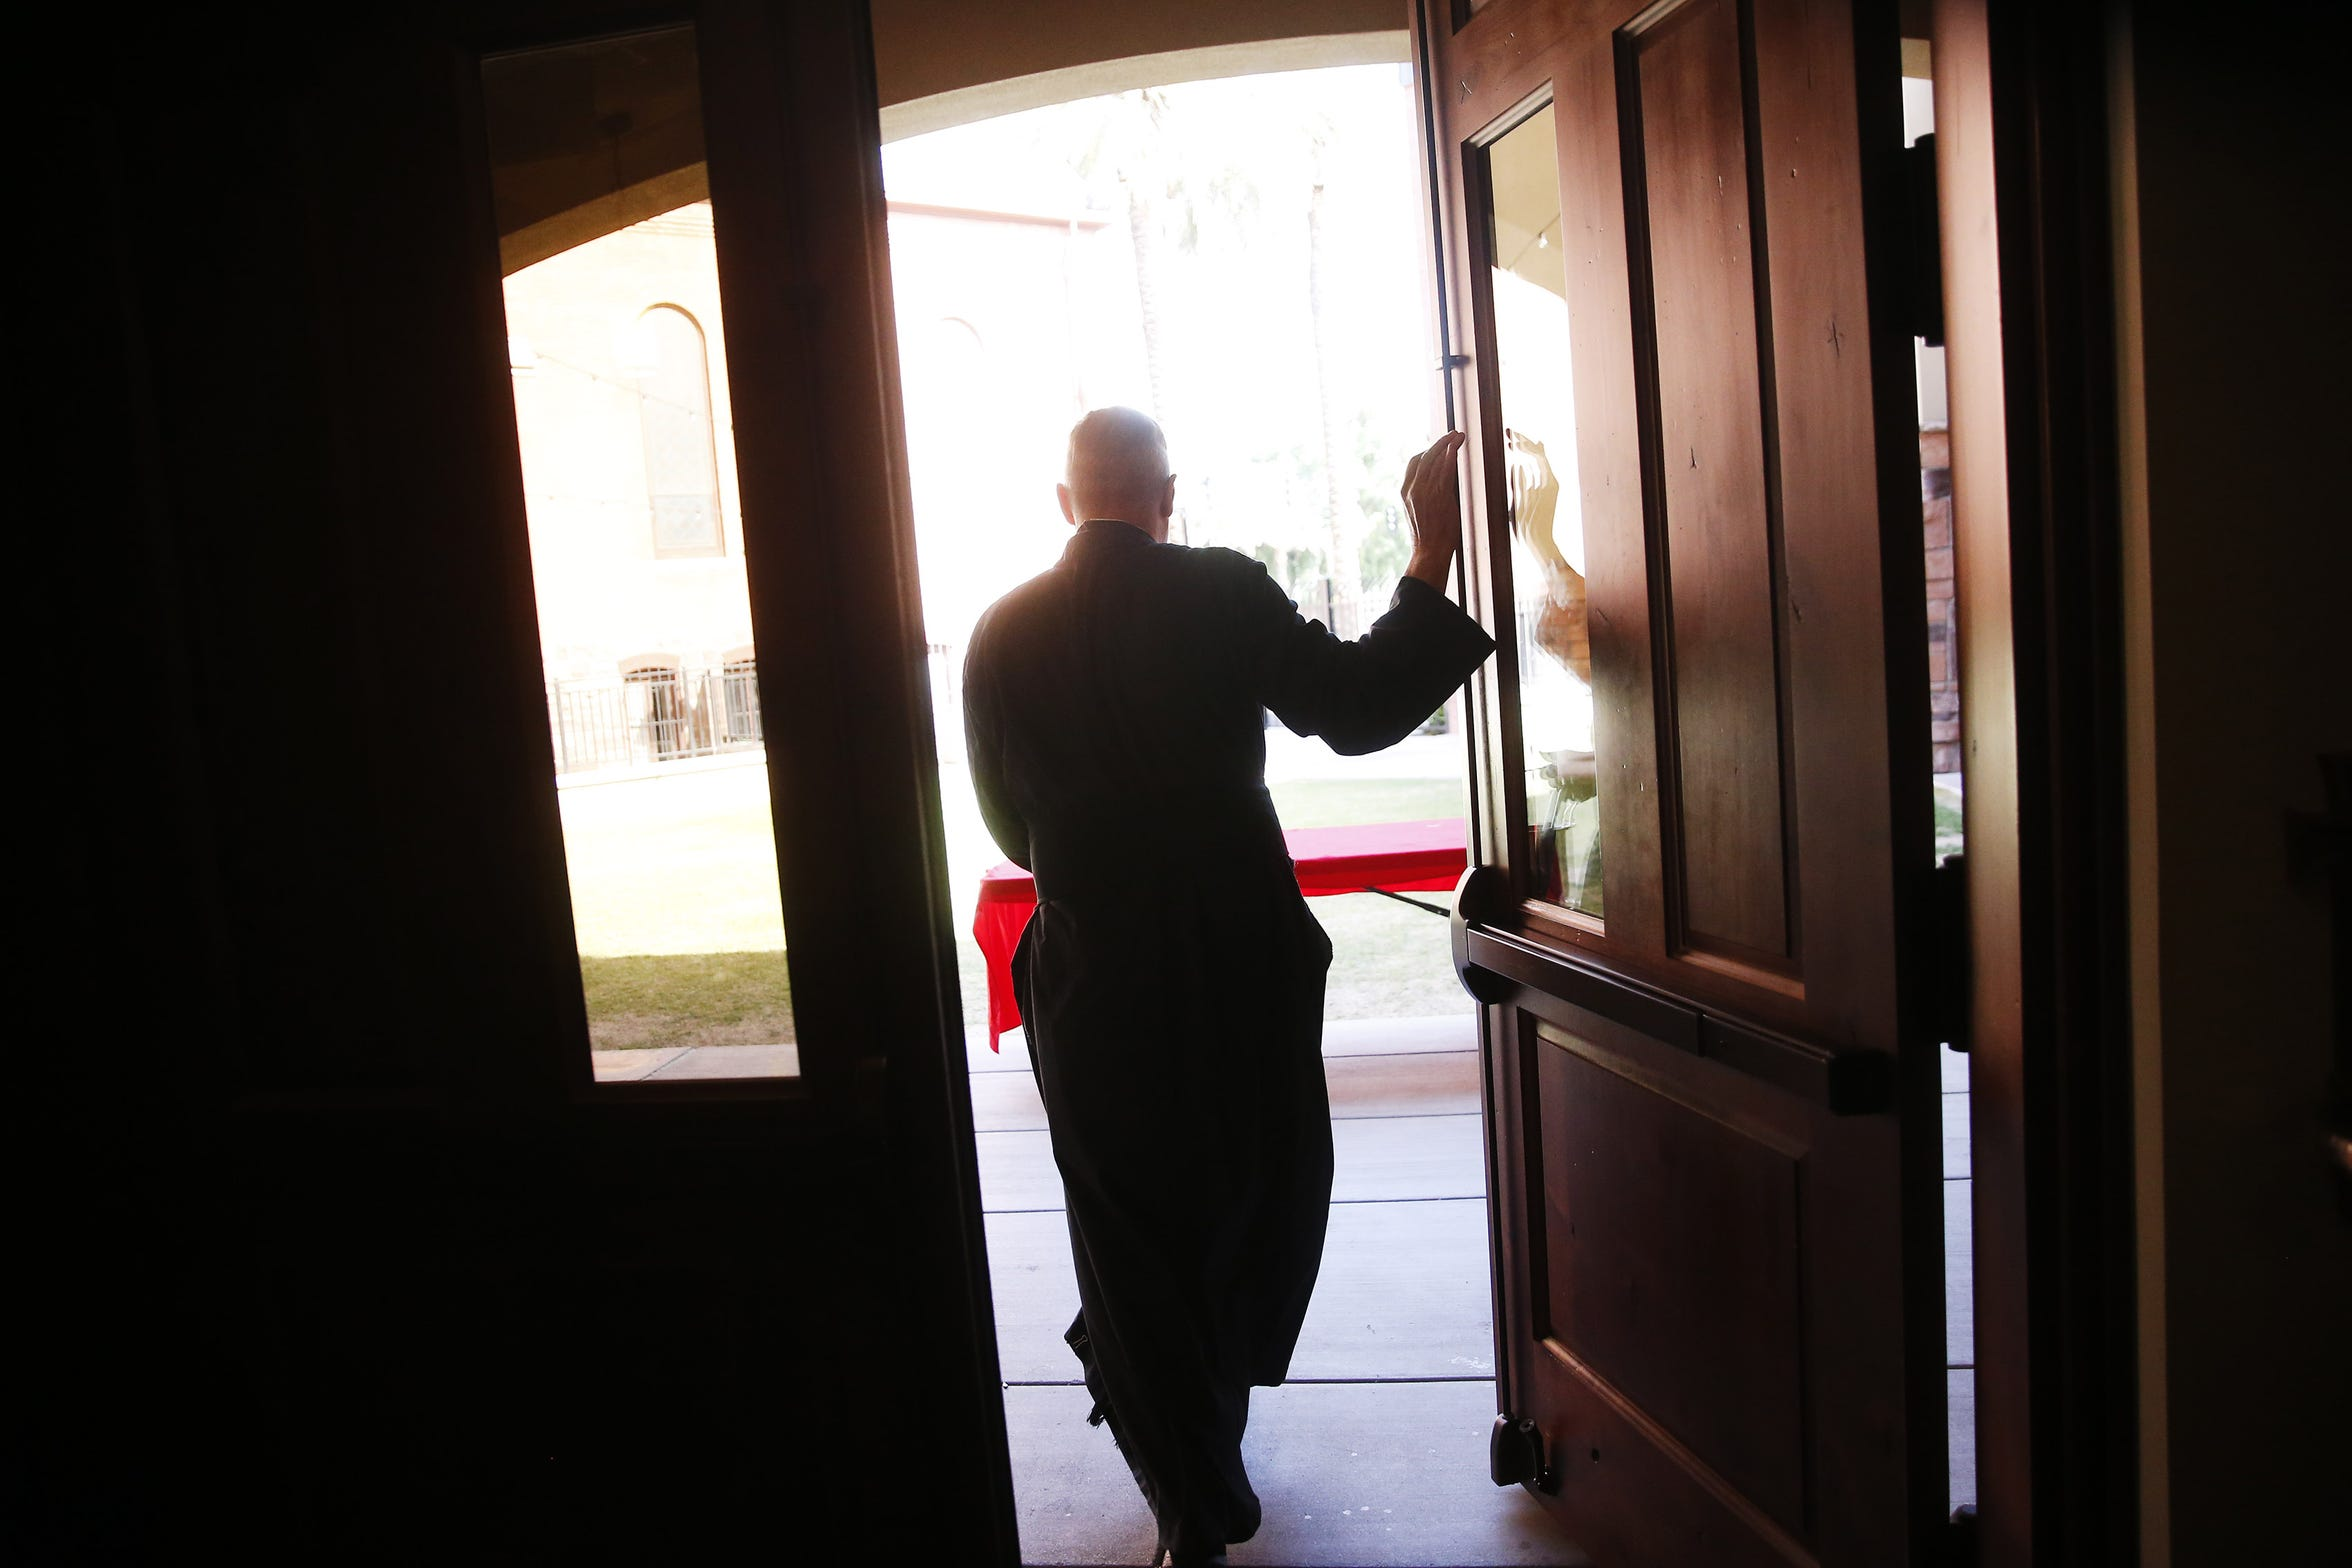 The Rev. Rob Clements walks out to the courtyard of the ASU Catholic Newman Center in Tempe, Ariz. April 14, 2019.